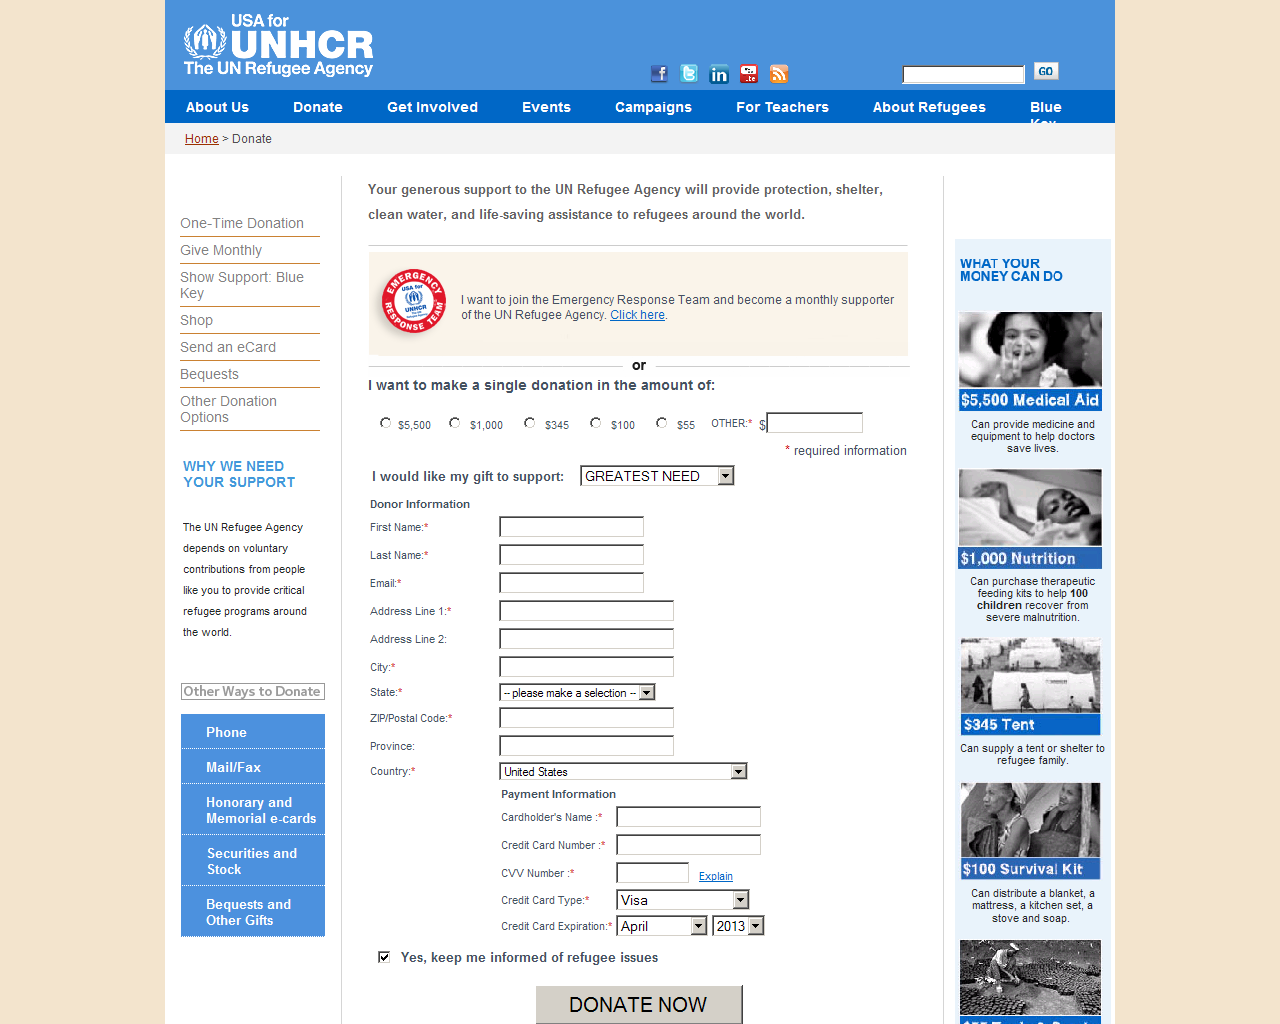 Syria_Fake_Bogus_Fraudulent_Donation_Site_Campaign_Agency_UNHCR_Scam_Fraud_Credit_Card